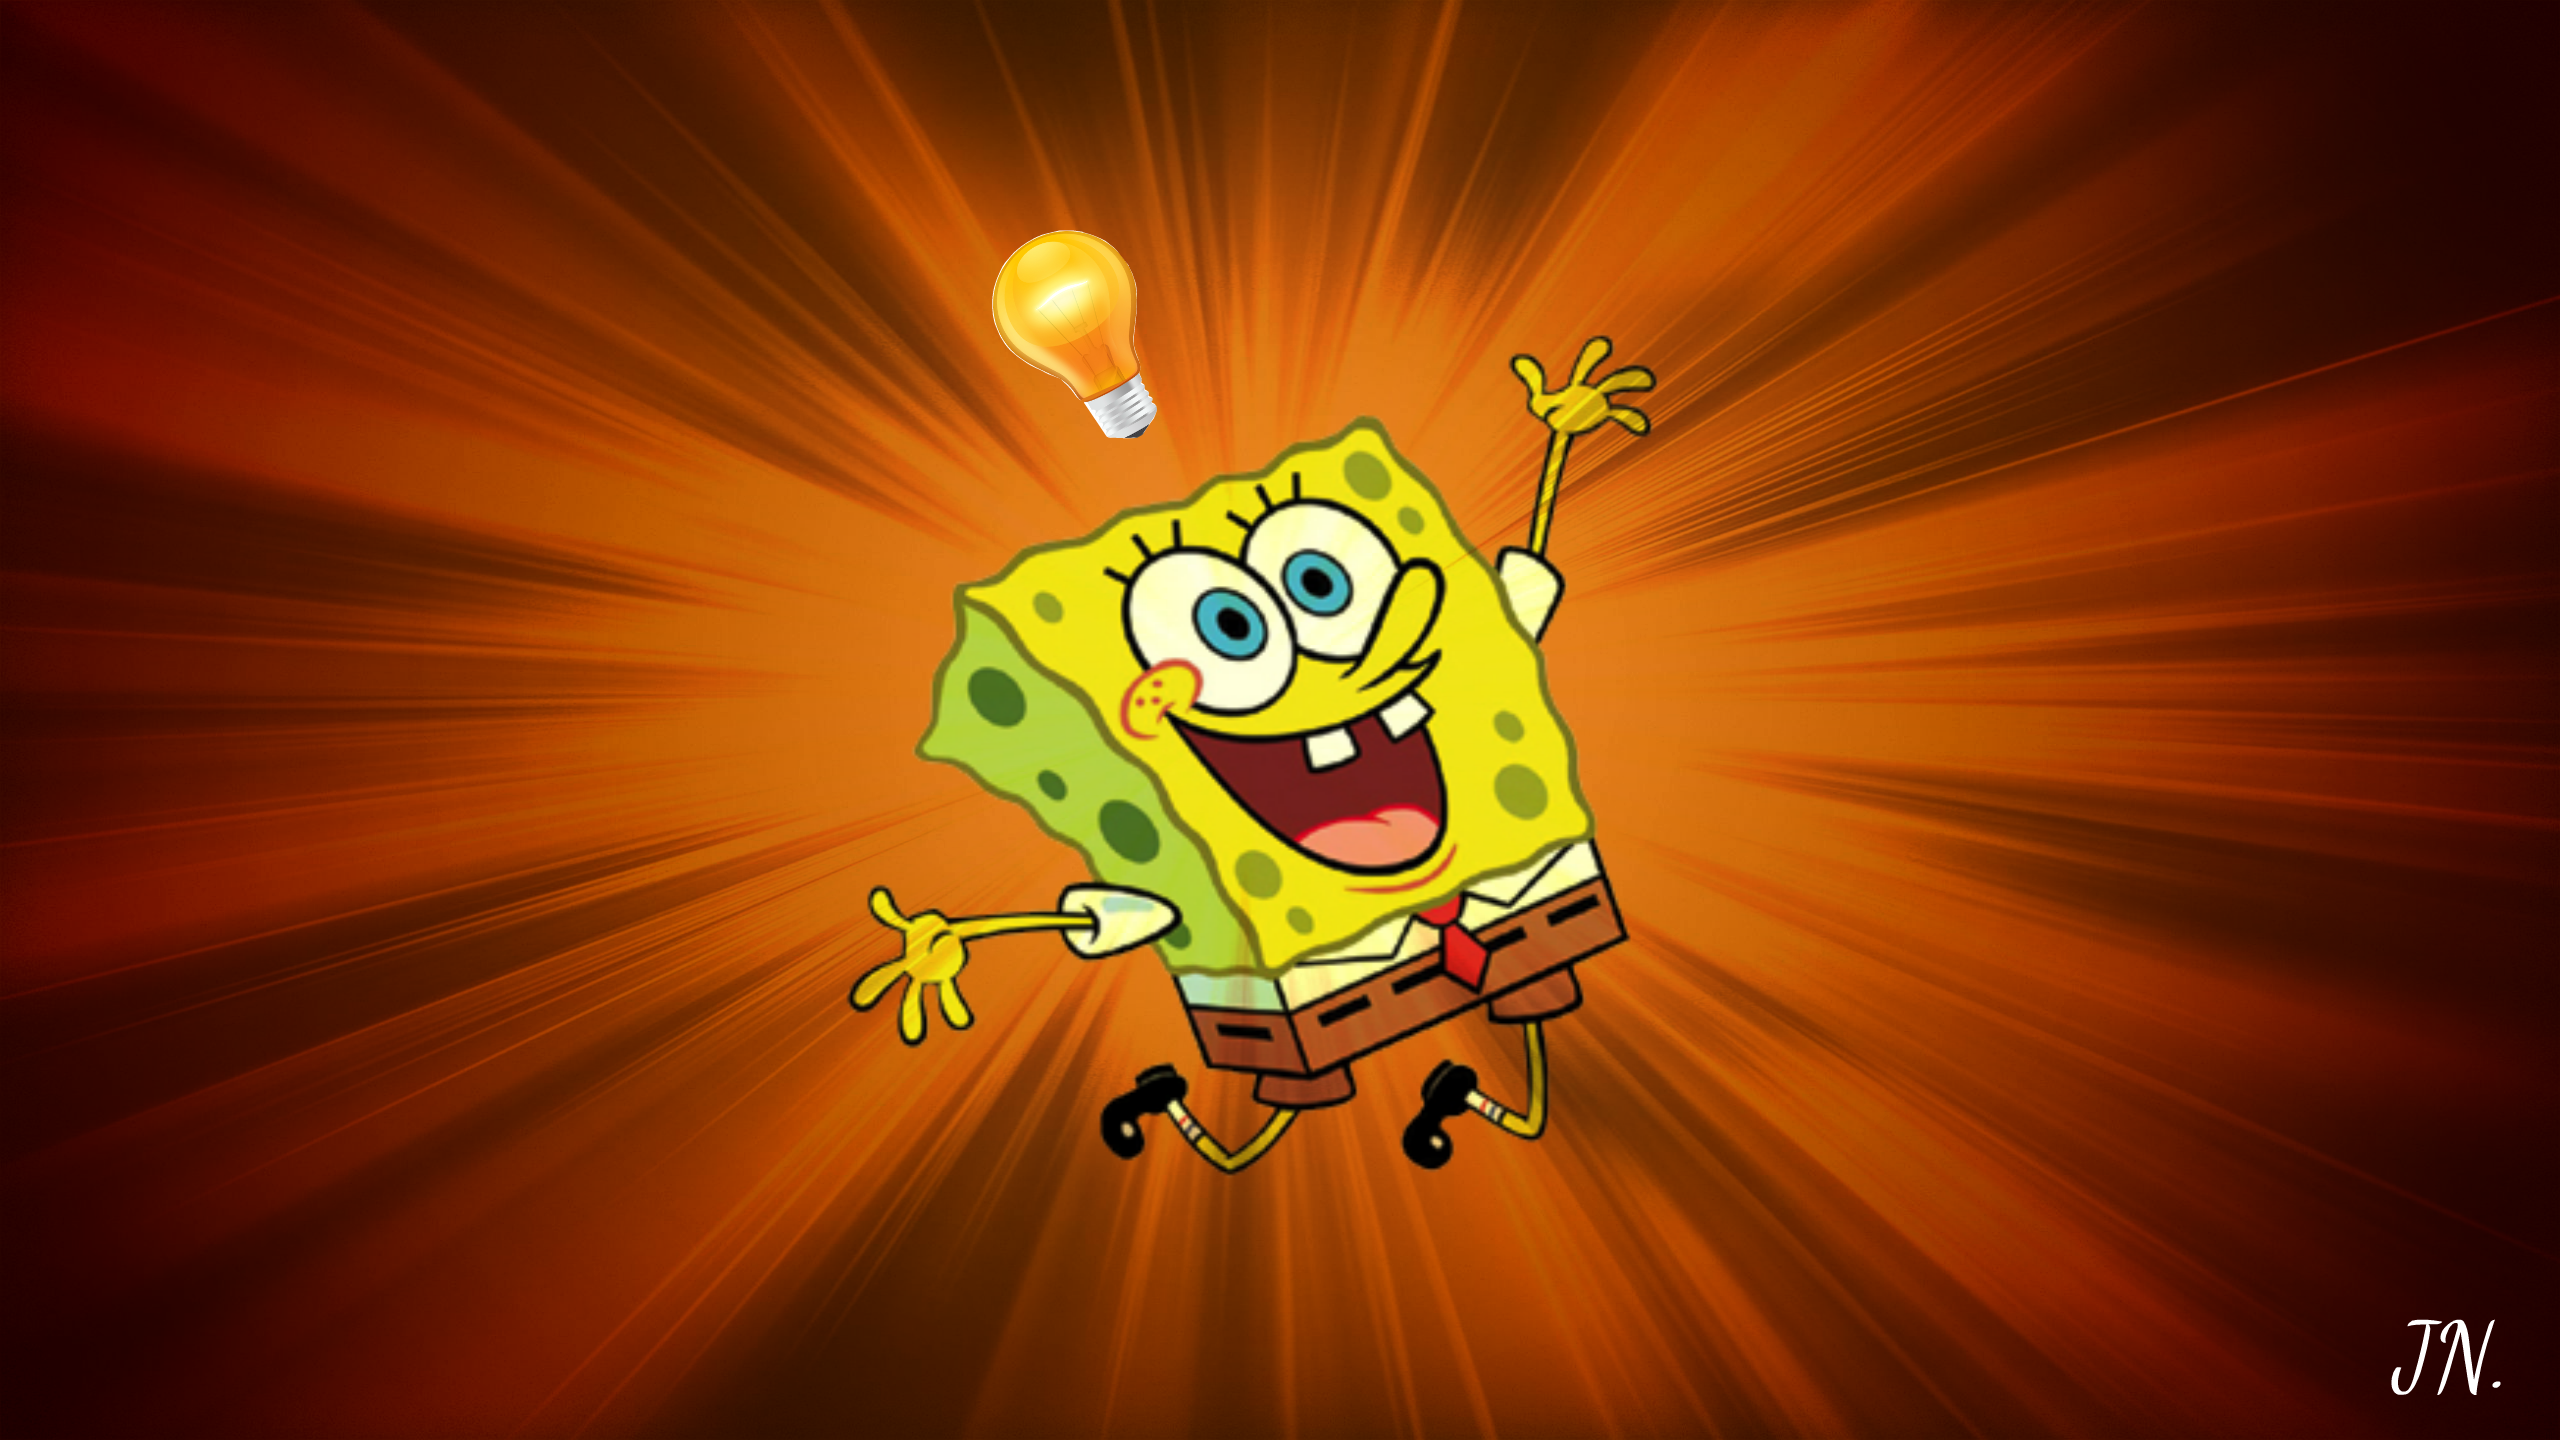 Spongebob Wallpaper High Resolution